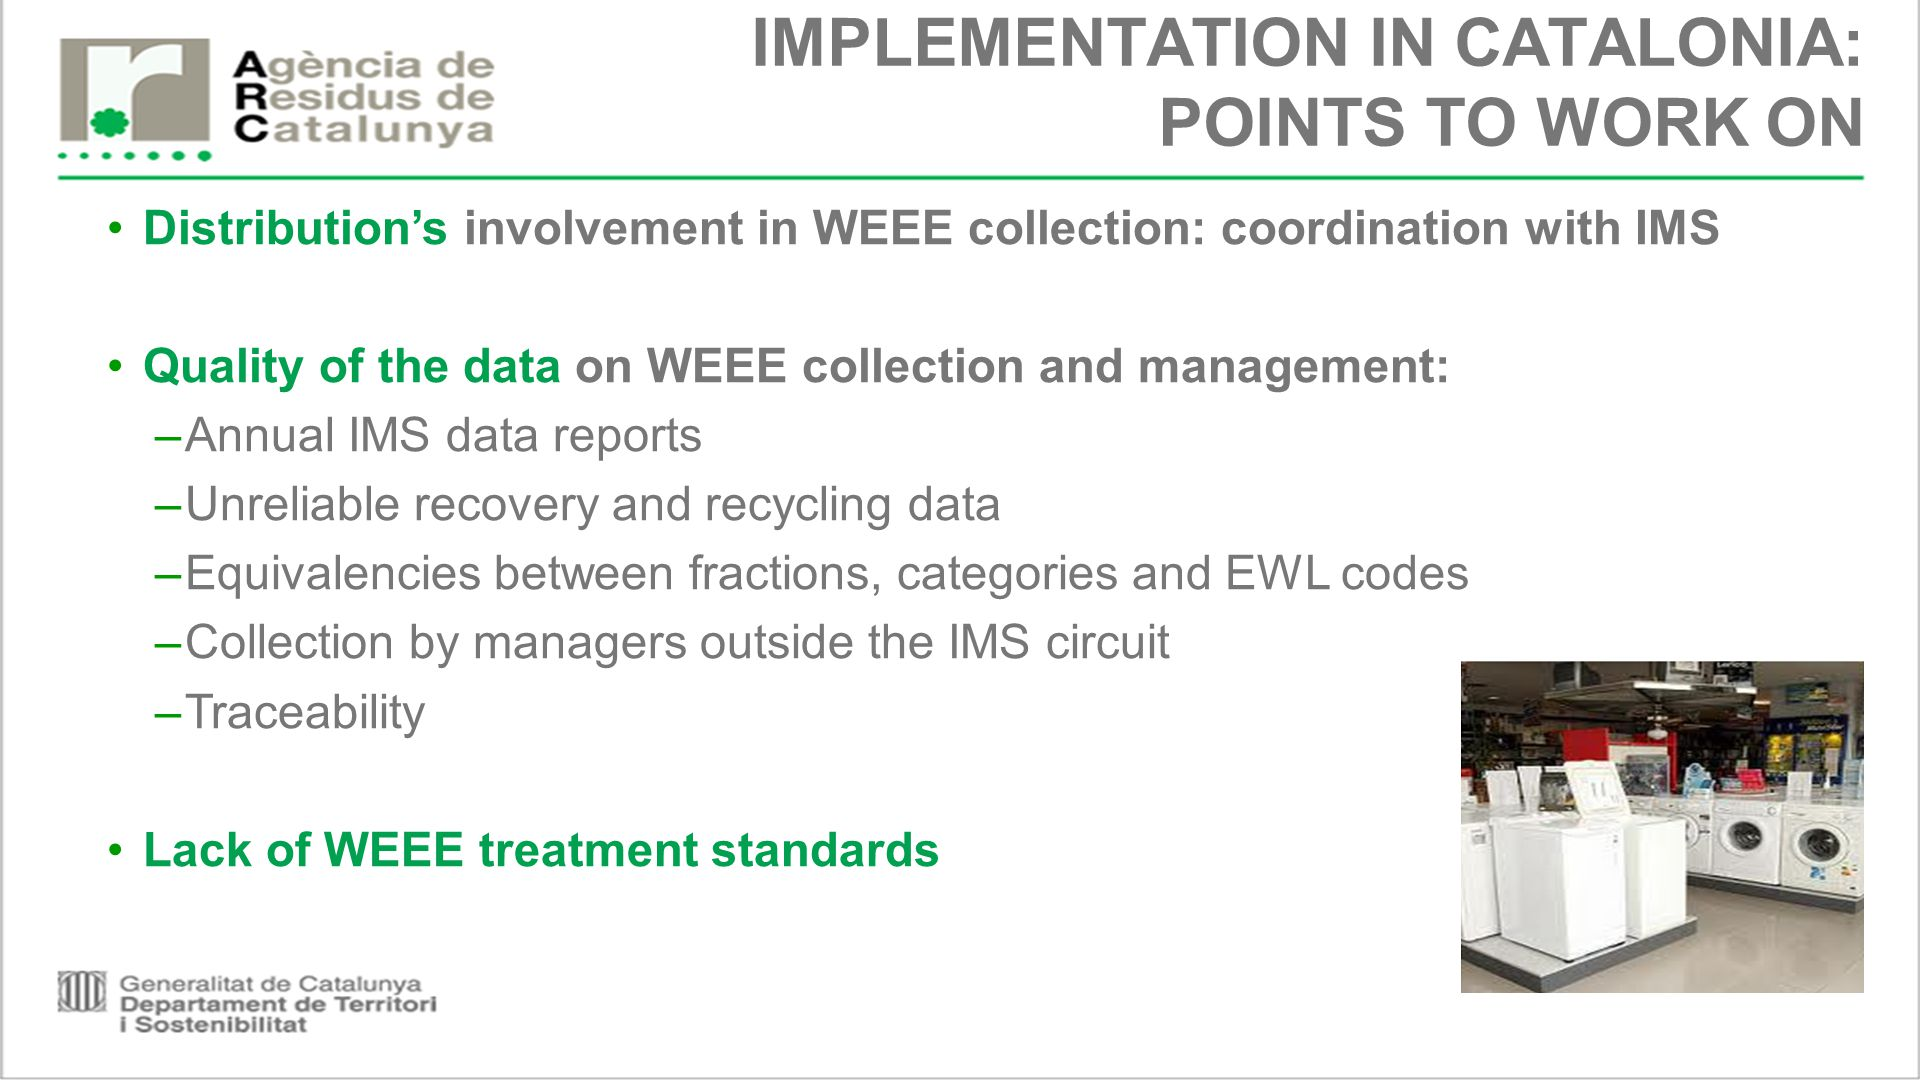 IMPLEMENTATION IN CATALONIA: POINTS TO WORK ON Distribution's involvement in WEEE collection: coordination with IMS Quality of the data on WEEE collection and management: –Annual IMS data reports –Unreliable recovery and recycling data –Equivalencies between fractions, categories and EWL codes –Collection by managers outside the IMS circuit –Traceability Lack of WEEE treatment standards